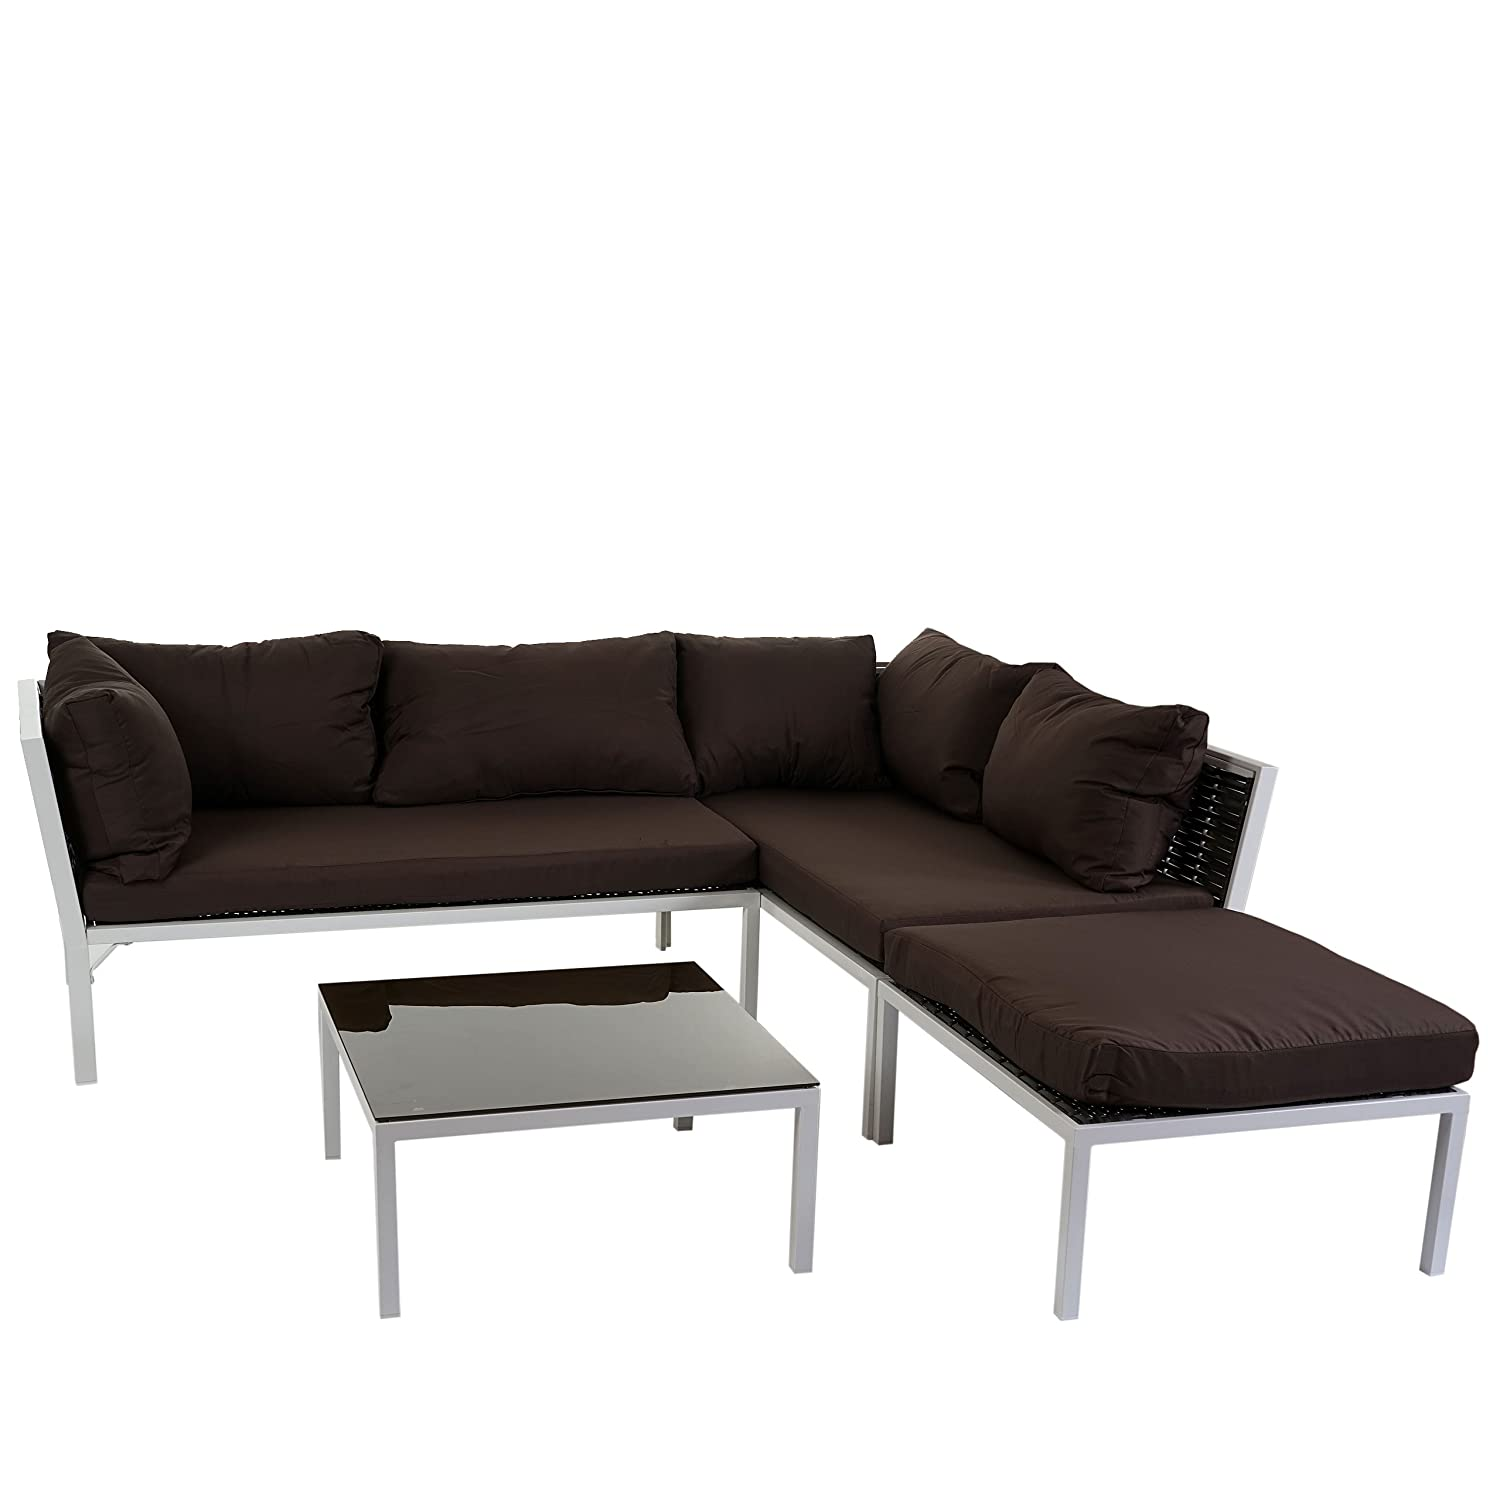 poly rattan sofa garnitur delphi sitzgruppe lounge set stahl set 1 kissen braun g nstig. Black Bedroom Furniture Sets. Home Design Ideas